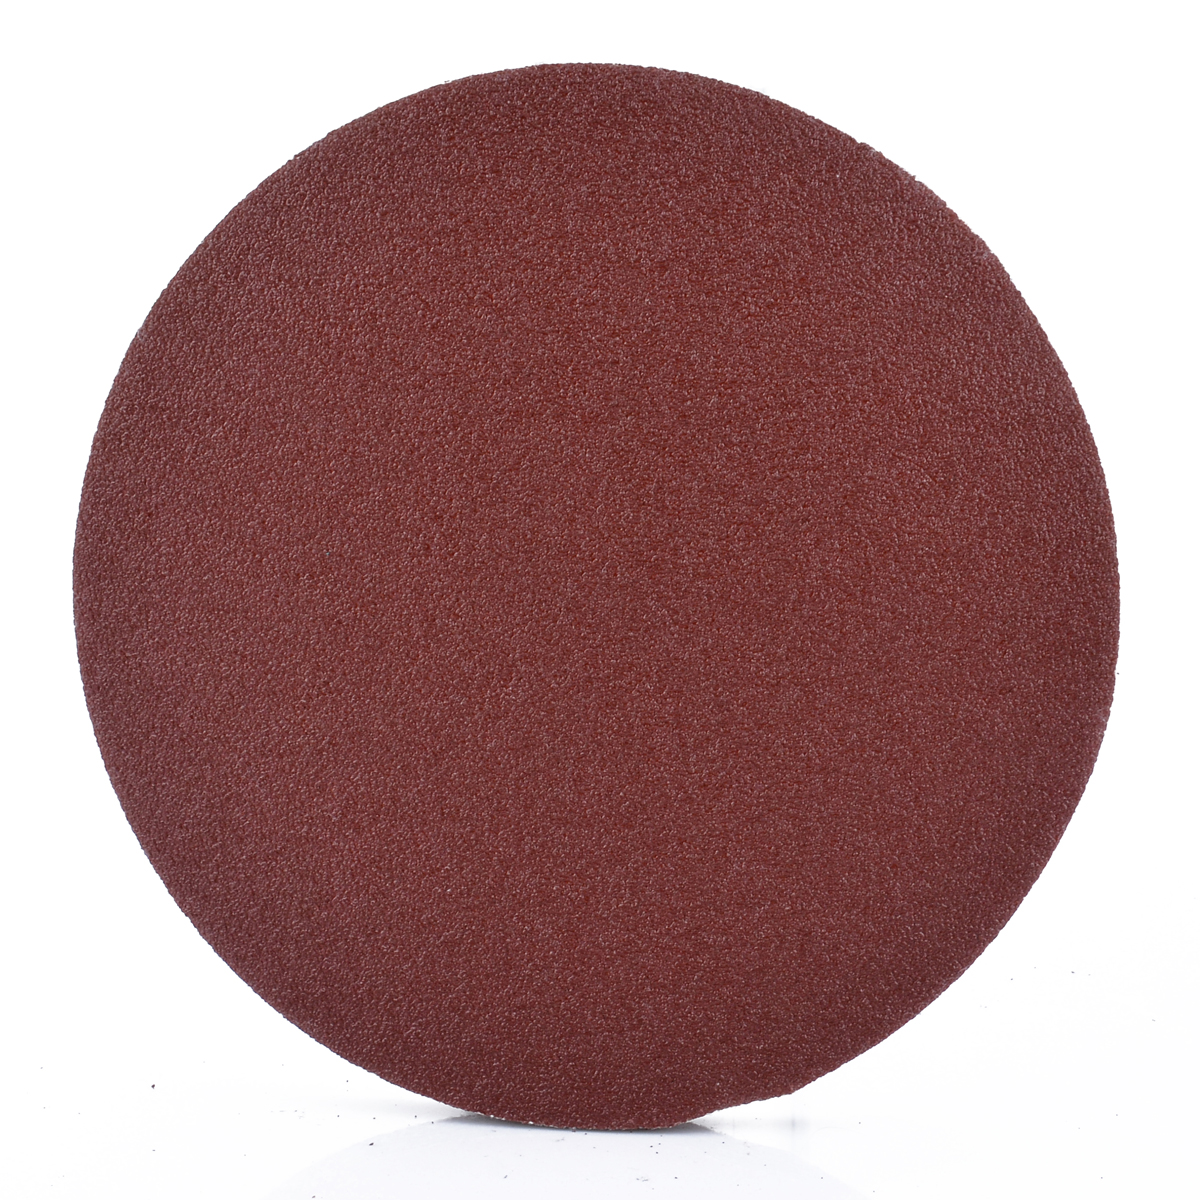 30Pcs 6 Inch Self Adhesive Sanding Disk 80/180/320 Grit Sanding Disc Stick On Sandpaper Peel for Polishing Abrasive Rotary Tools 10pcs dremel accessories sandpaper sanding flap polishing wheels sanding disc set shutter polishing wheel for rotary power tools